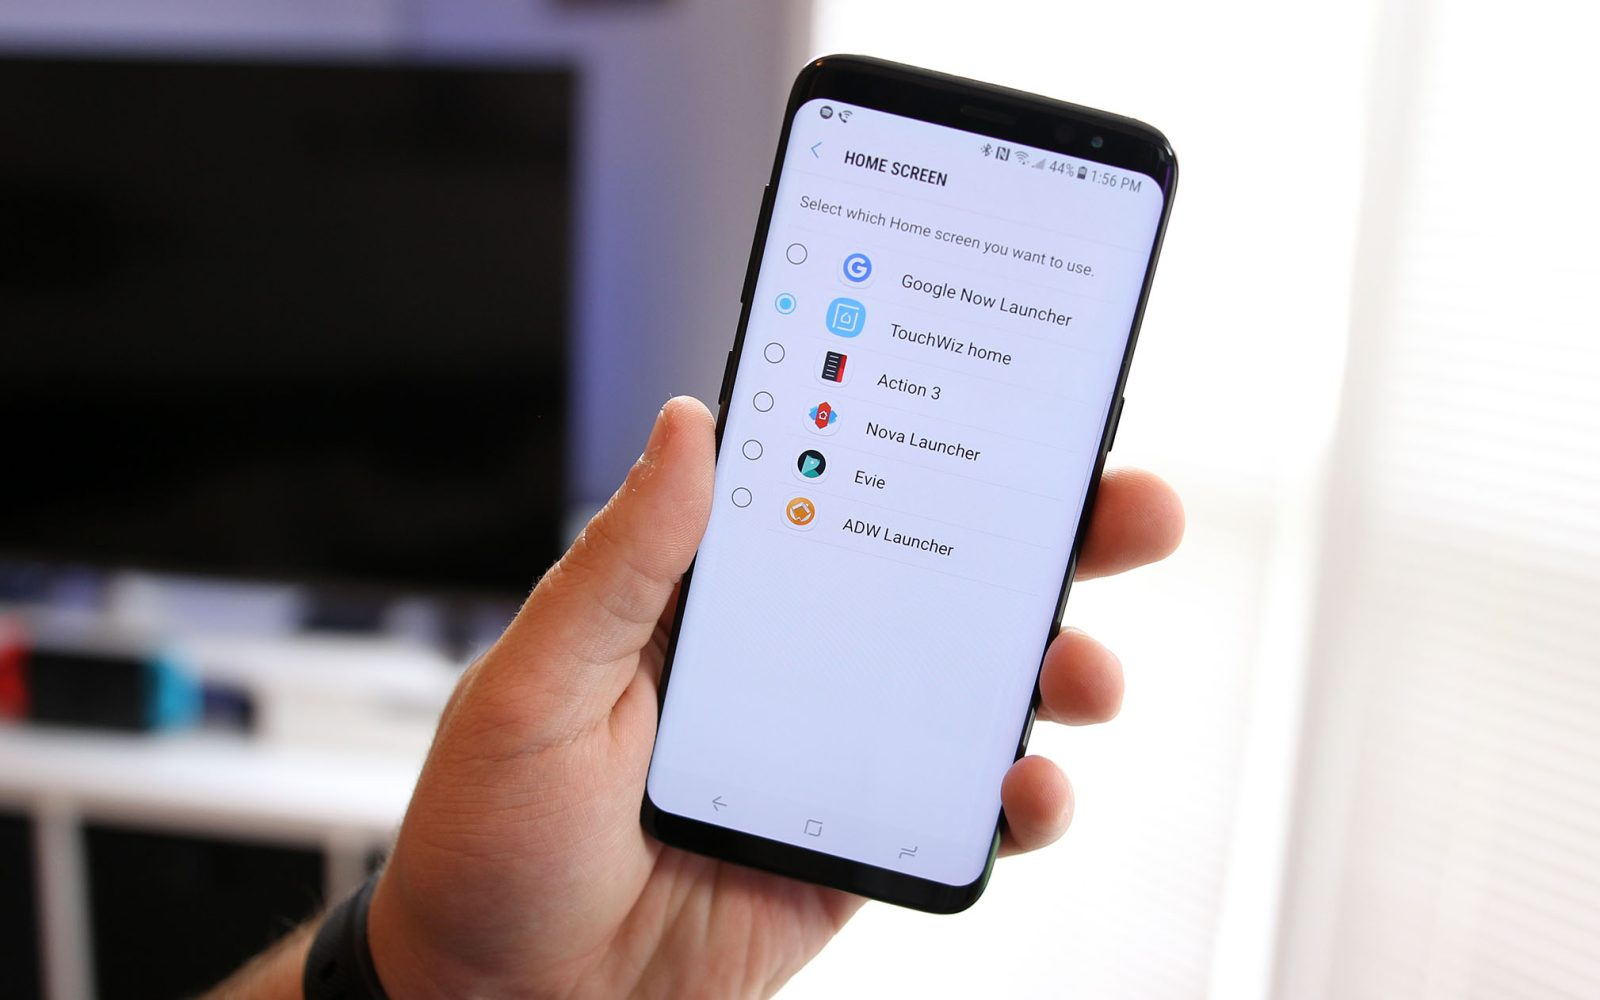 How to change your homescreen launcher on the Samsung Galaxy S8